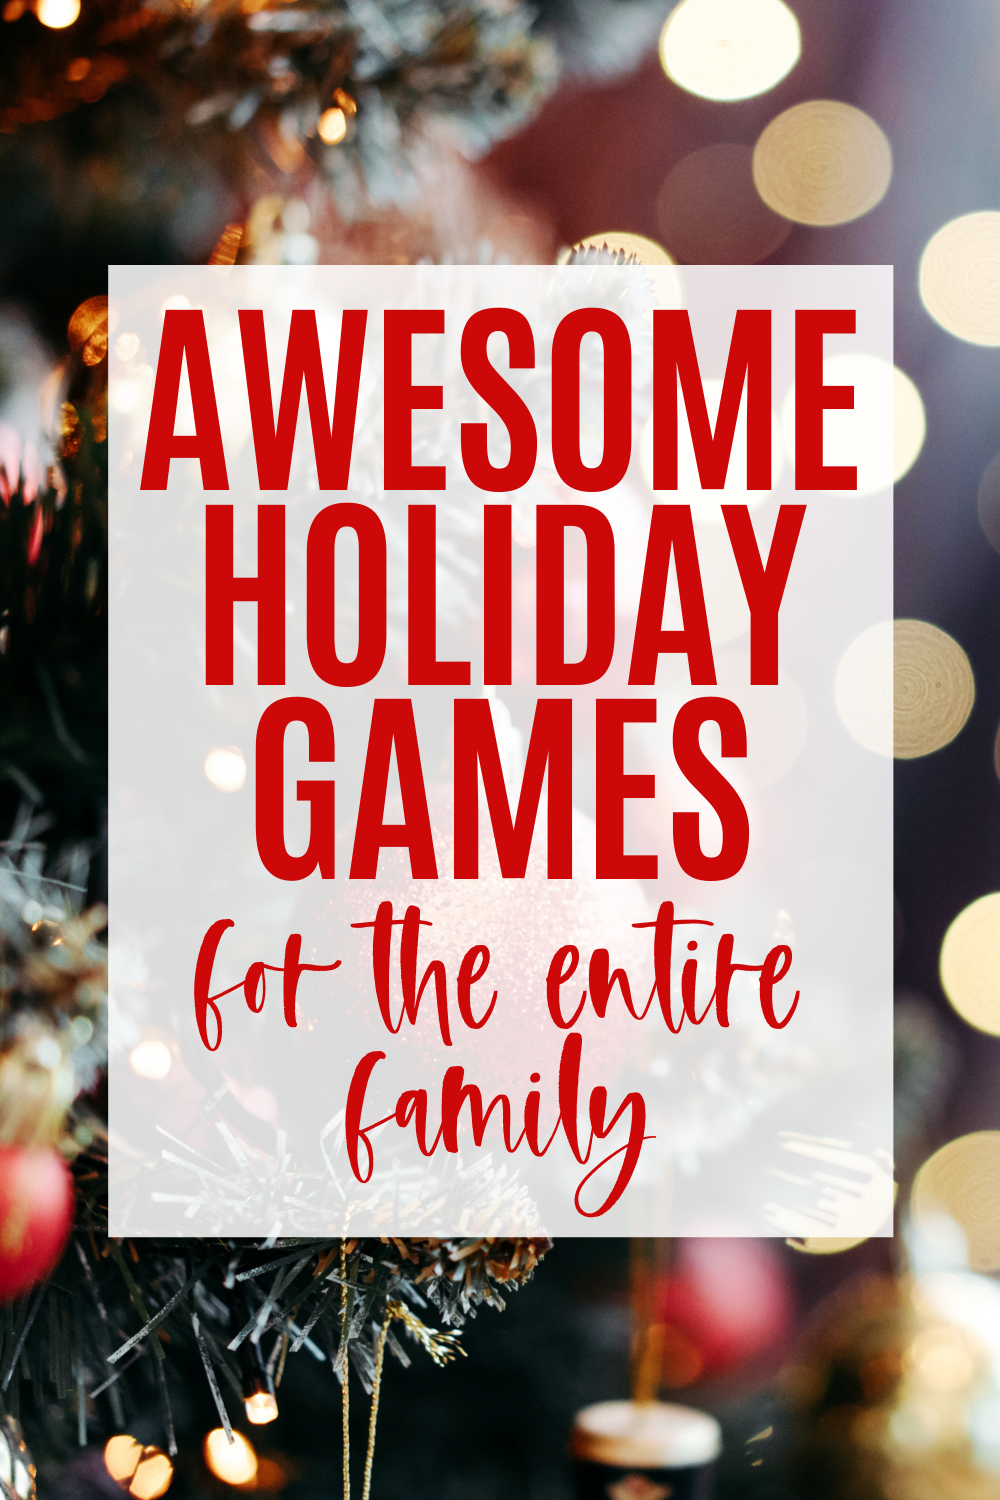 Awesome Holiday Games for the entire family